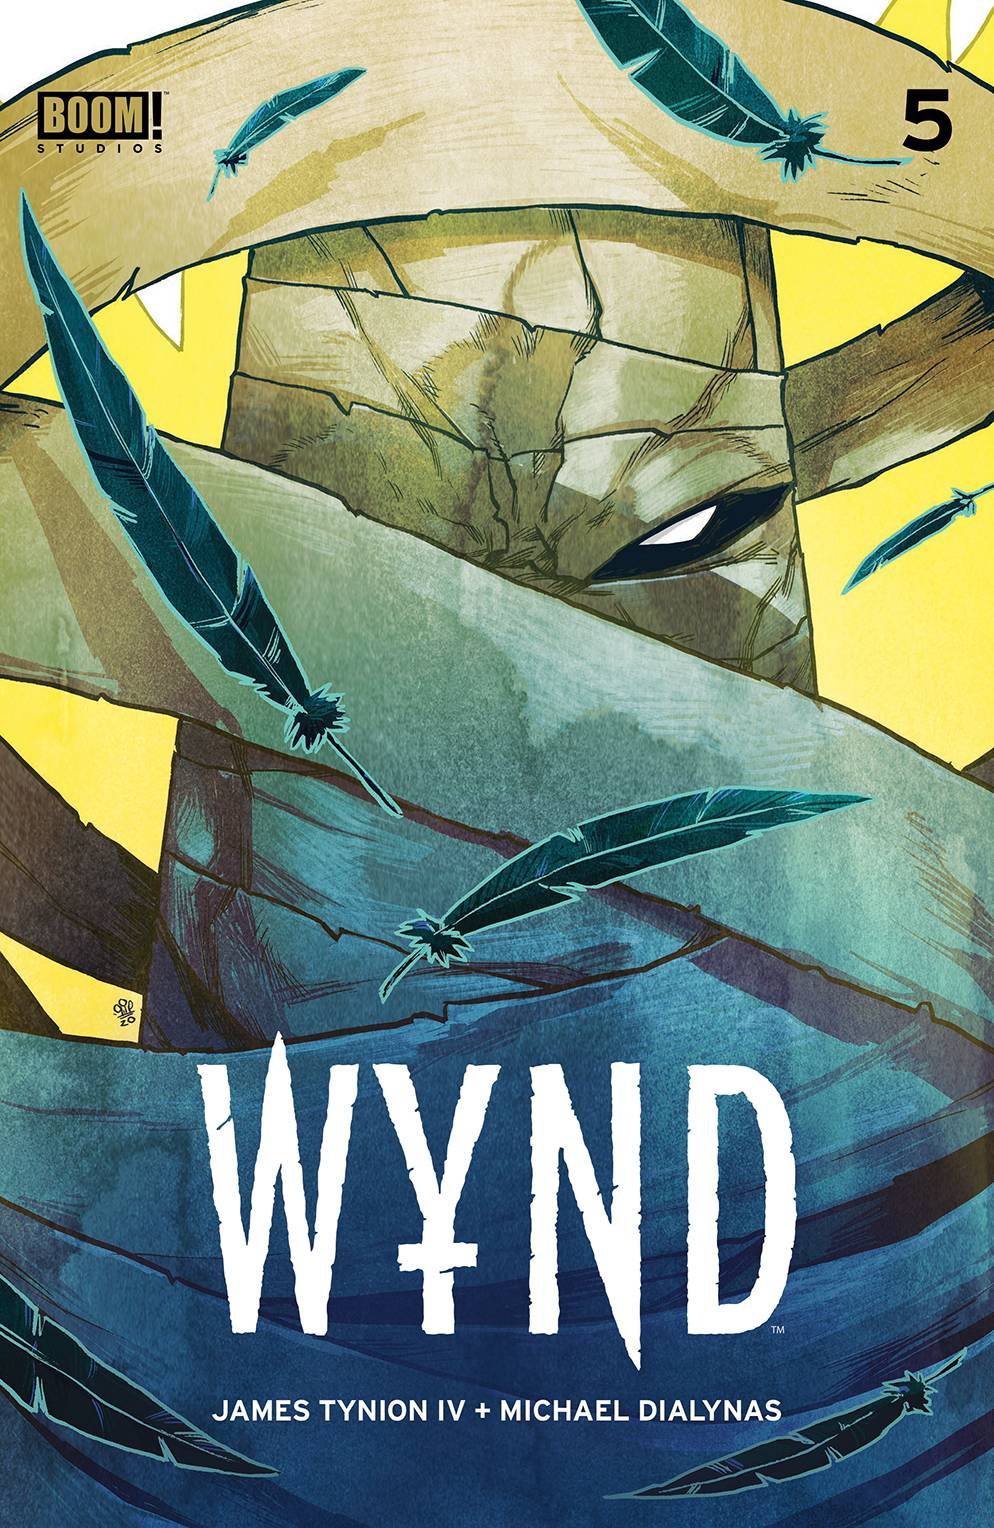 WYND #5 COVER A MAIN